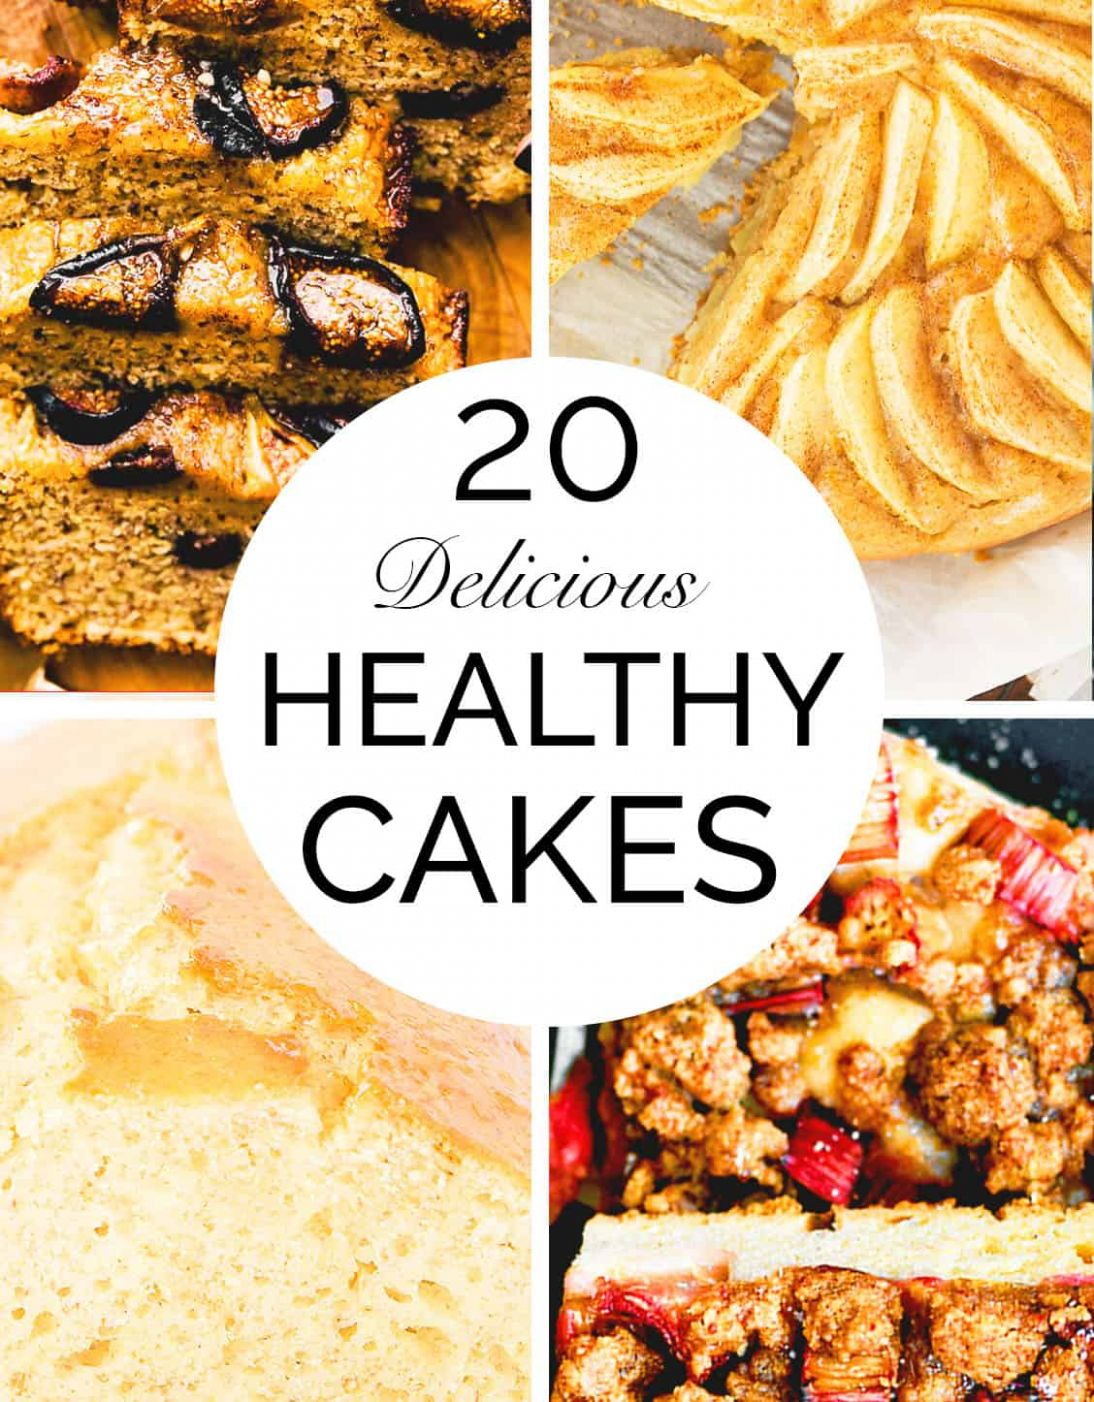 12 WHOLESOME & HEALTHY CAKE RECIPES - The clever meal - Healthy Recipes Baking